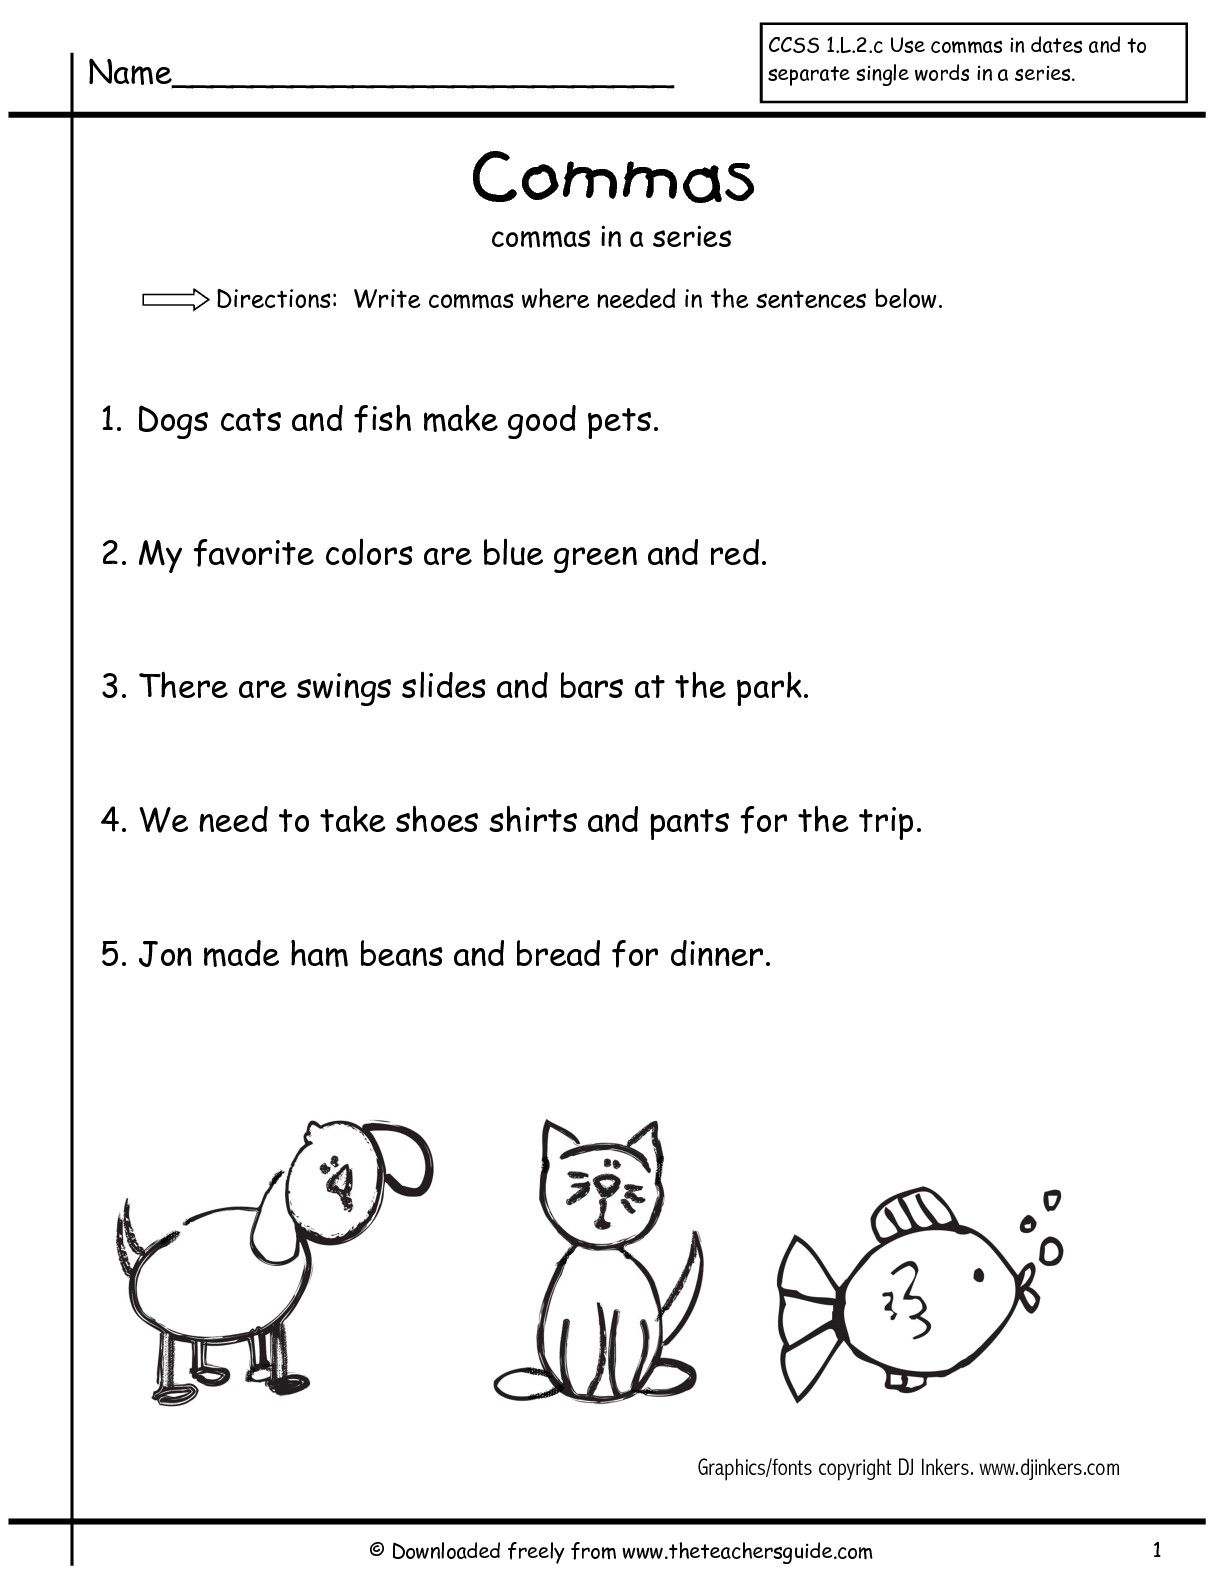 Printables Grammar Worksheets 1st Grade practice capitalization leveon bell search and grade 2 grammar worksheets commas in a series first free comma worksheets